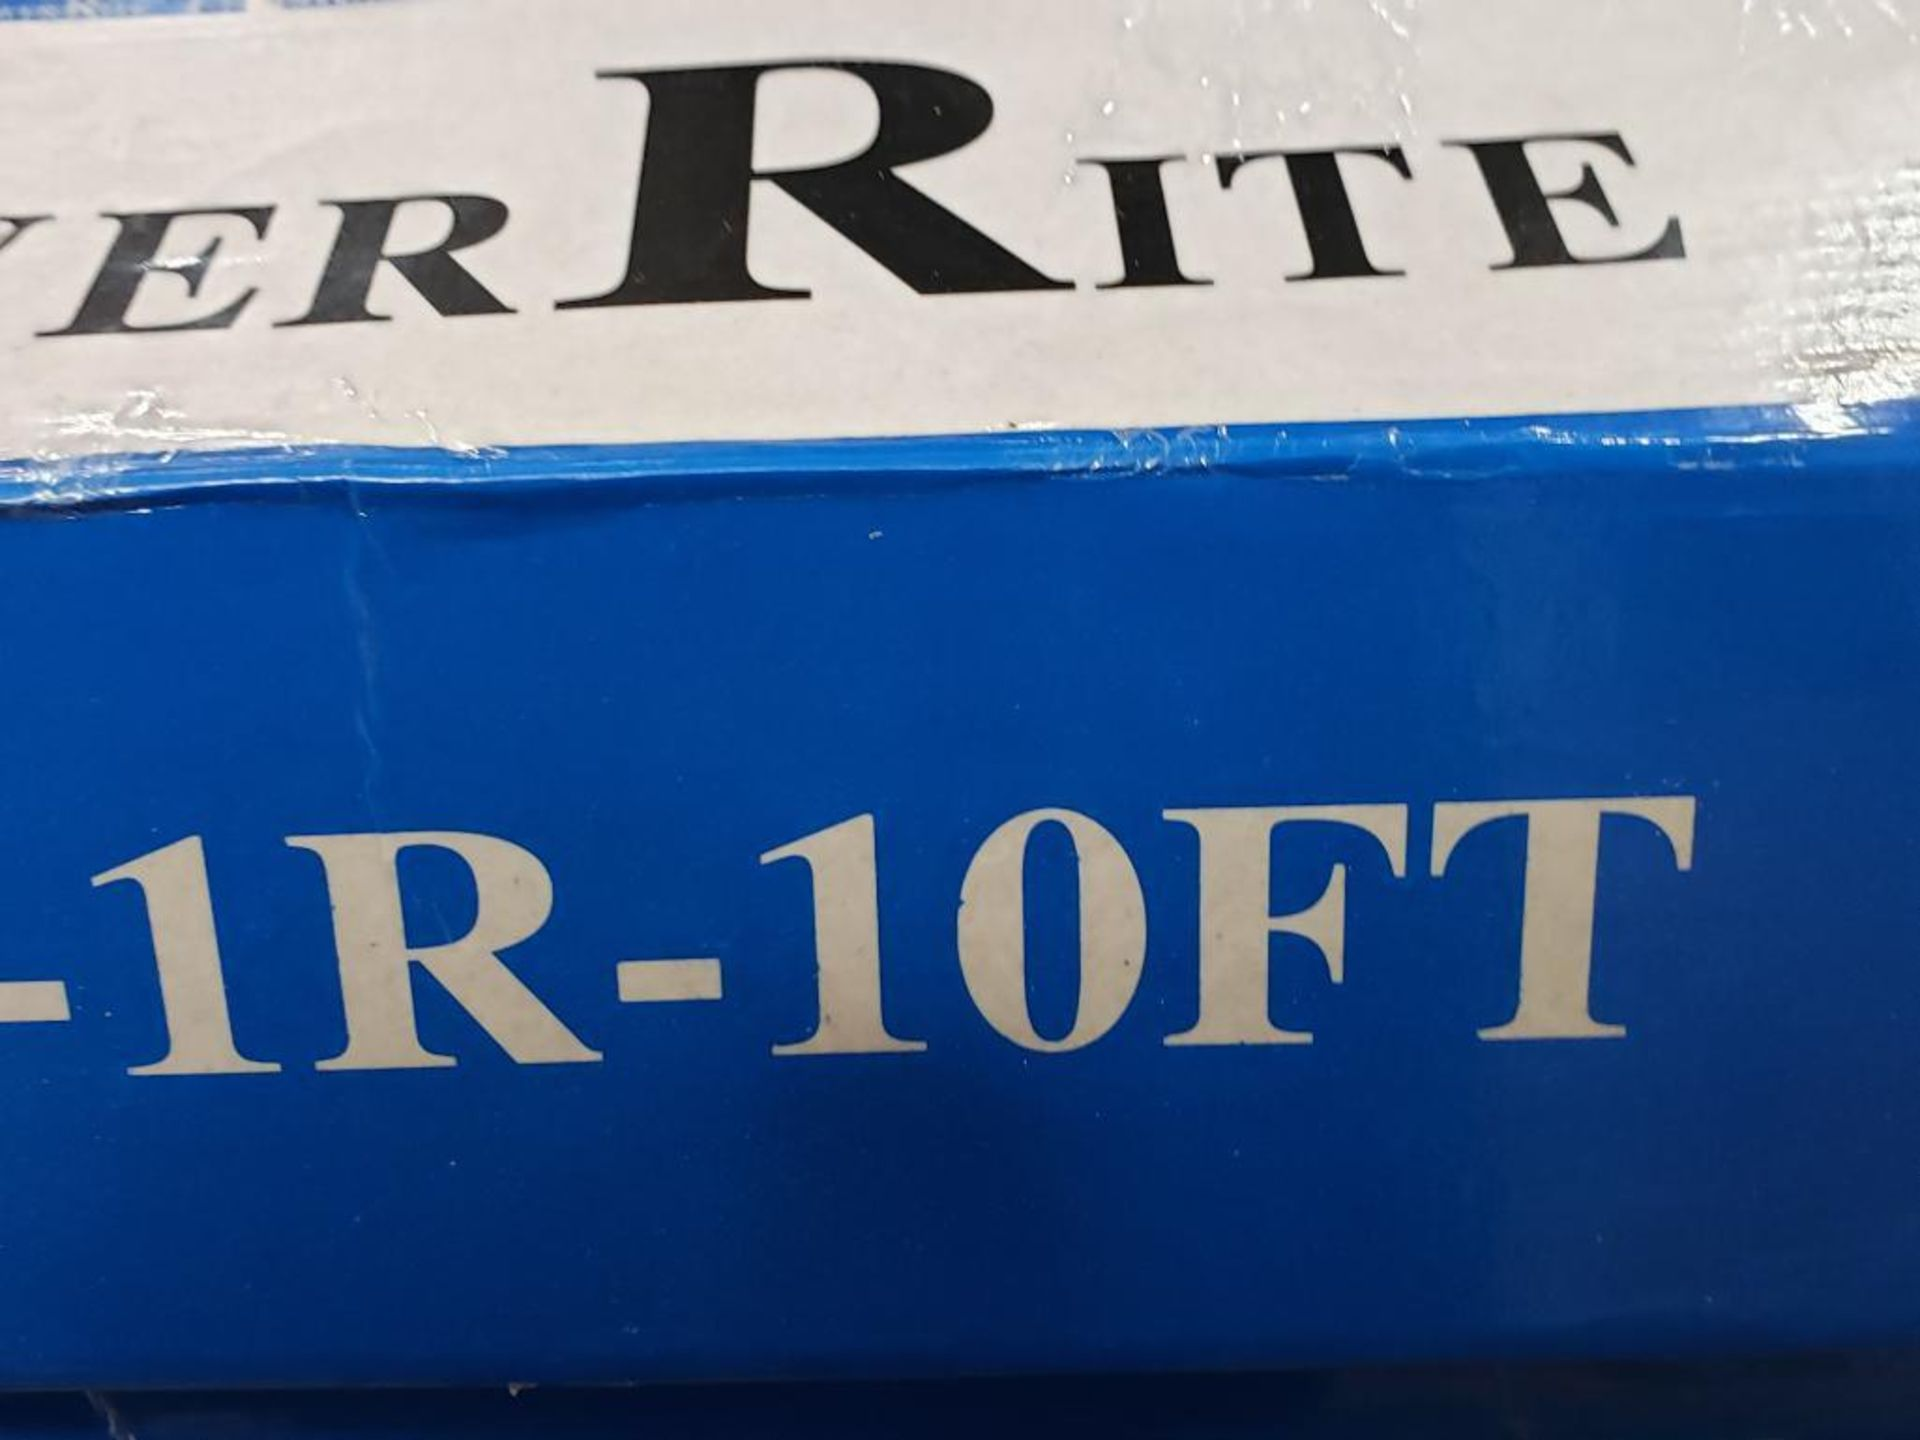 Power Rite ANSI 200-1R-10FT Roller Chain. New in Box. - Image 3 of 3